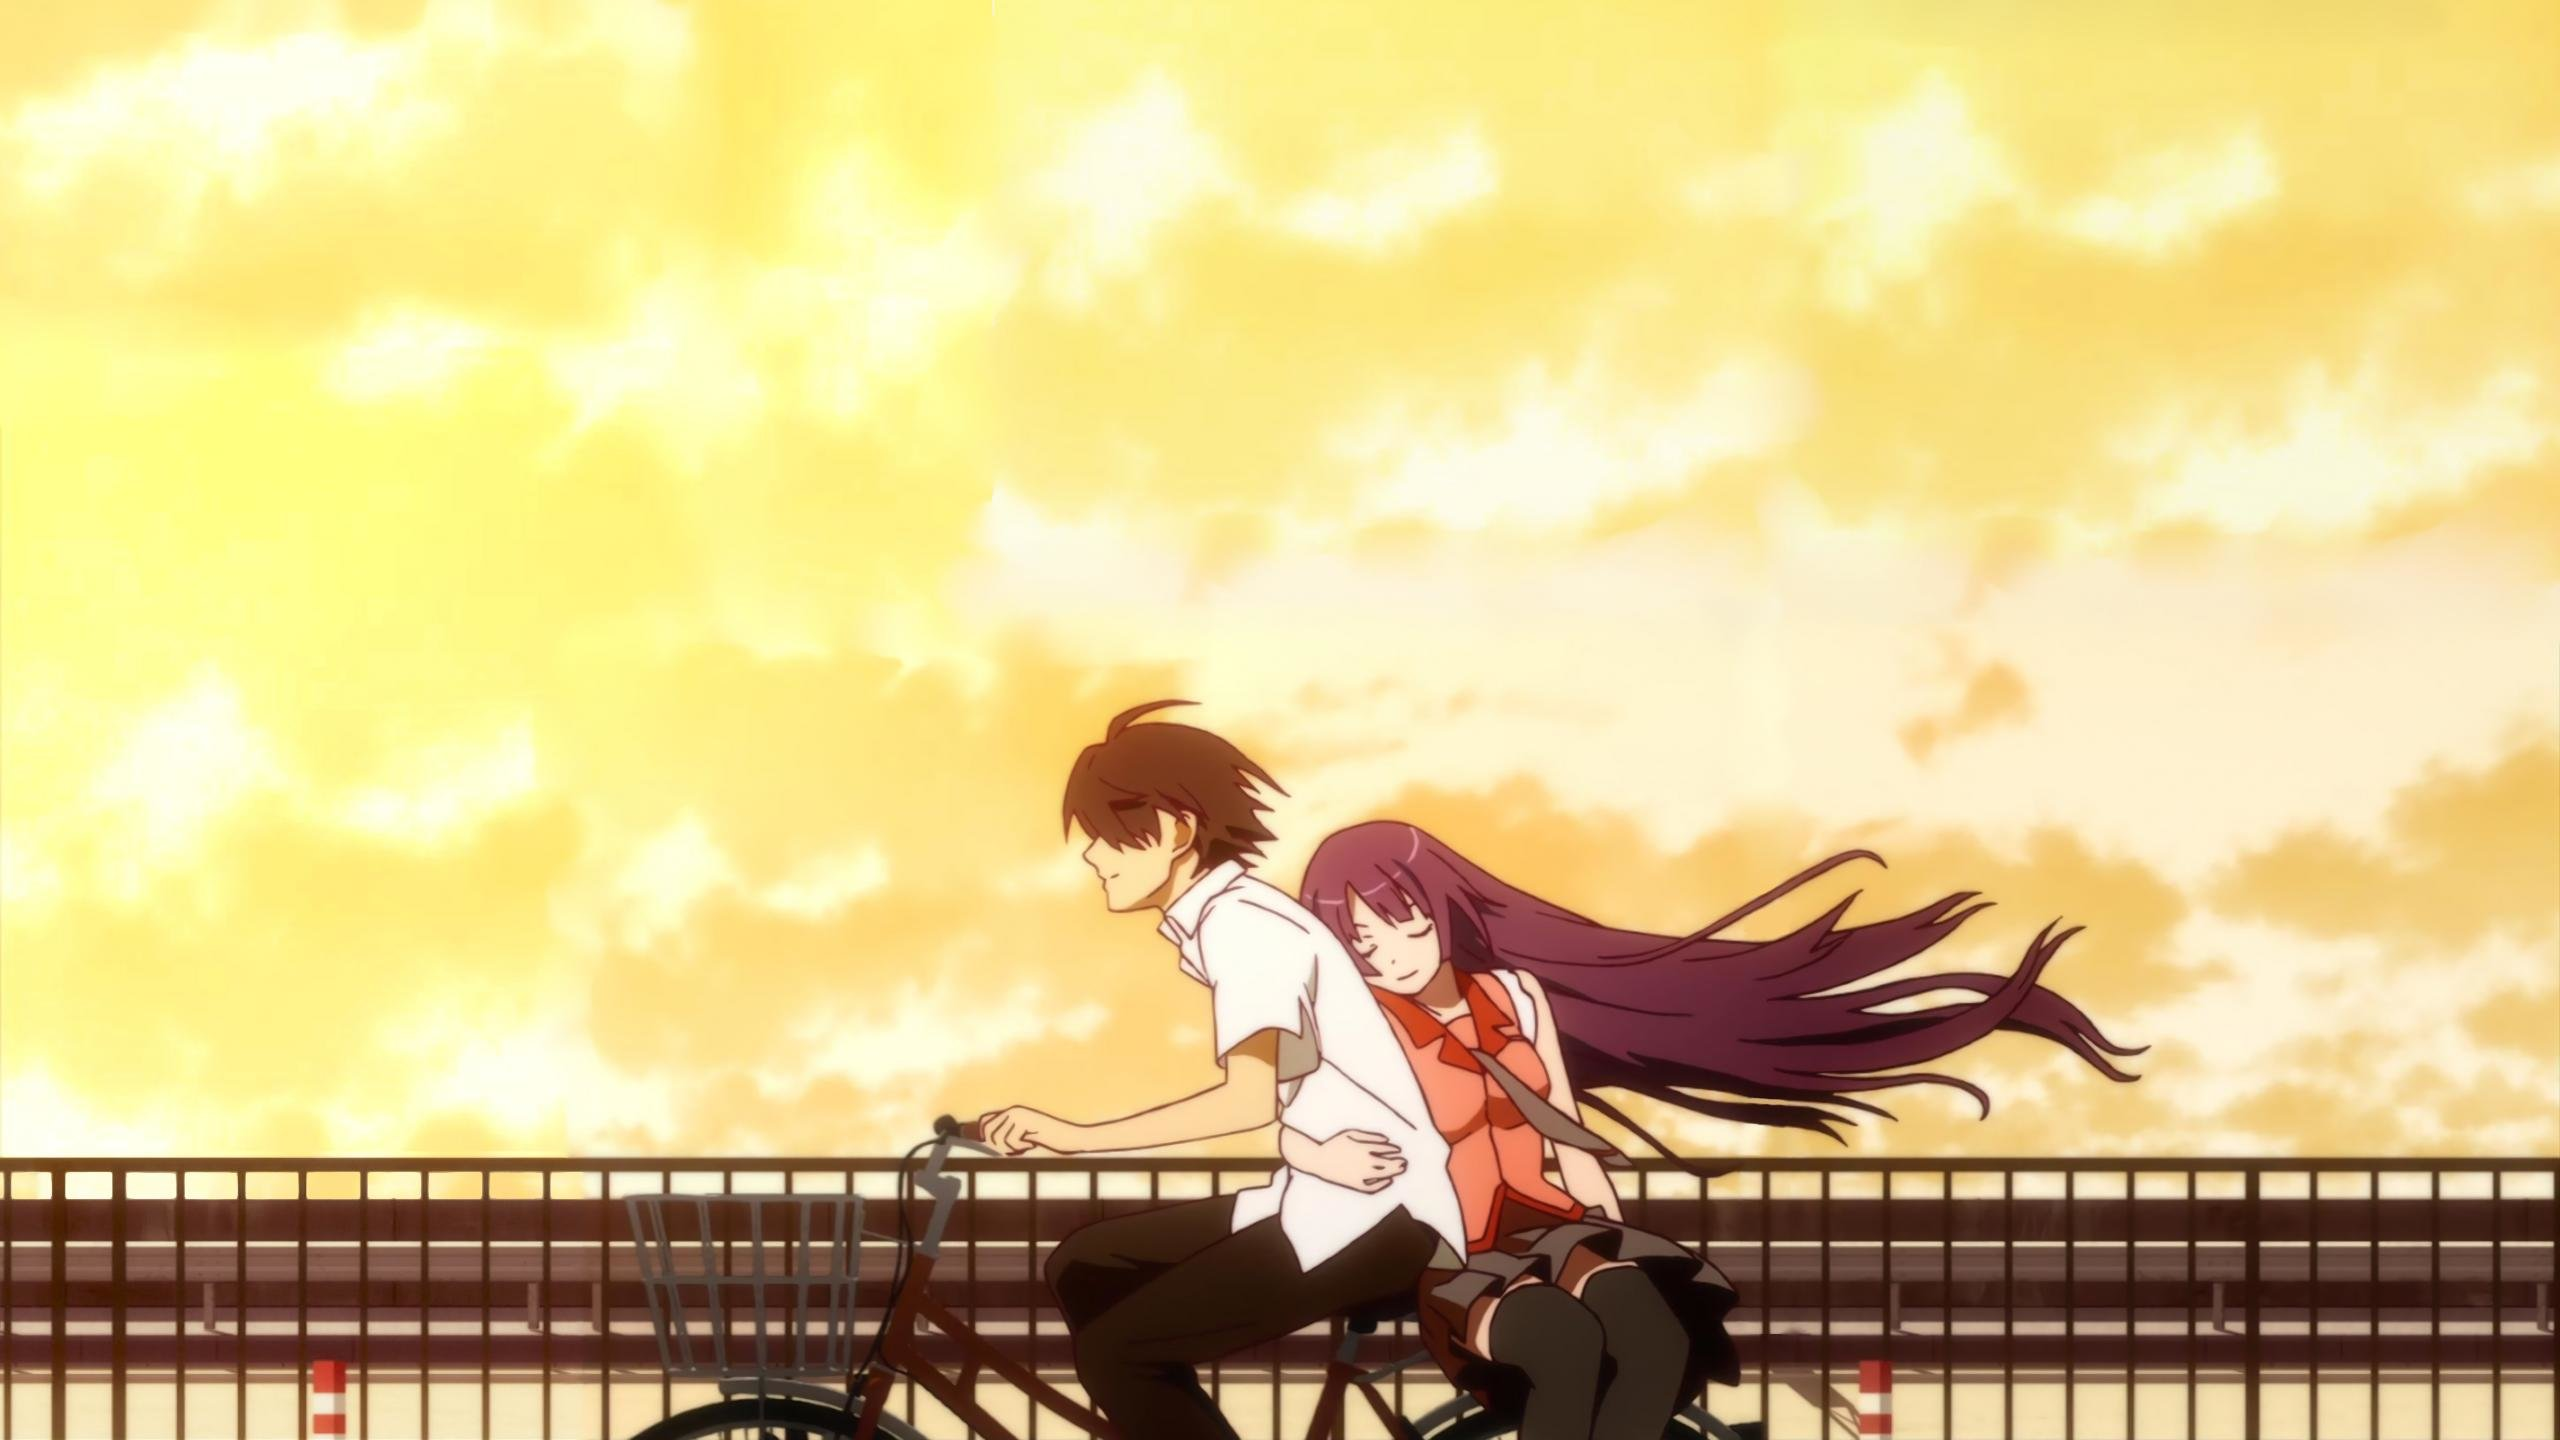 Free download Monogatari (Series) background ID:108640 hd 2560x1440 for desktop